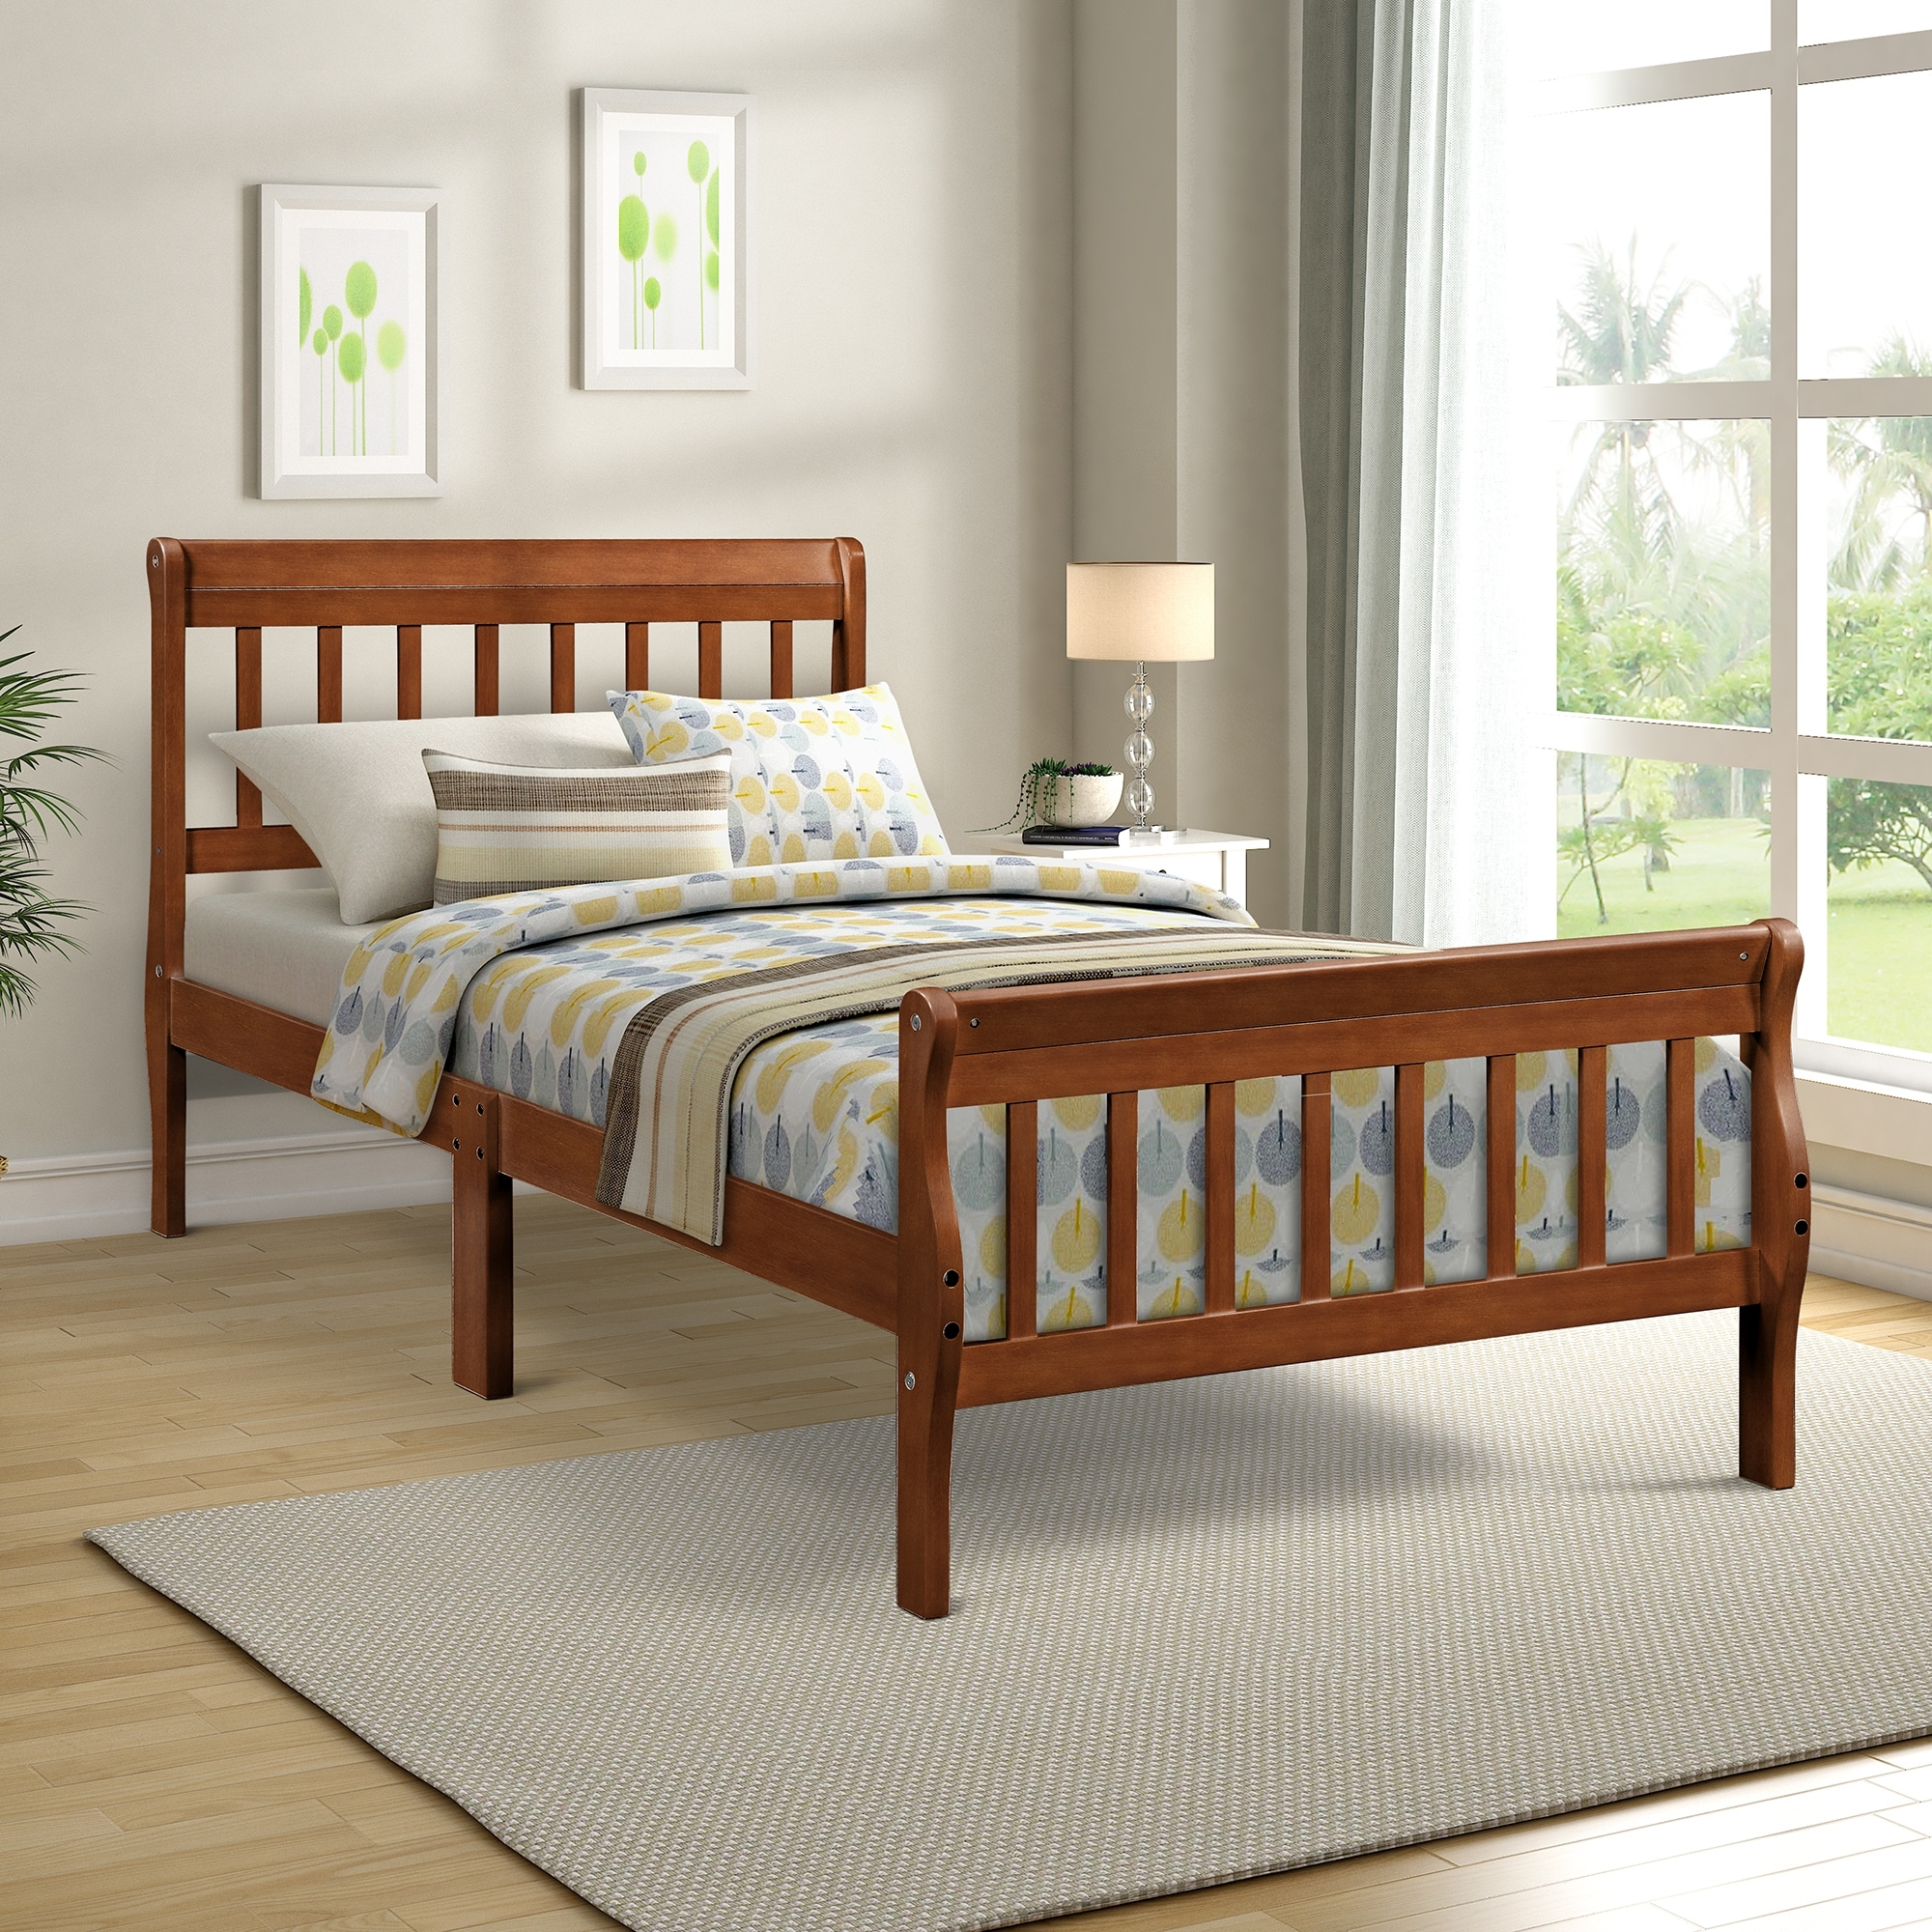 Wood Platform Bed Twin Bed Frame Panel Bed Foundation Sleigh Bed On Sale Overstock 31757921